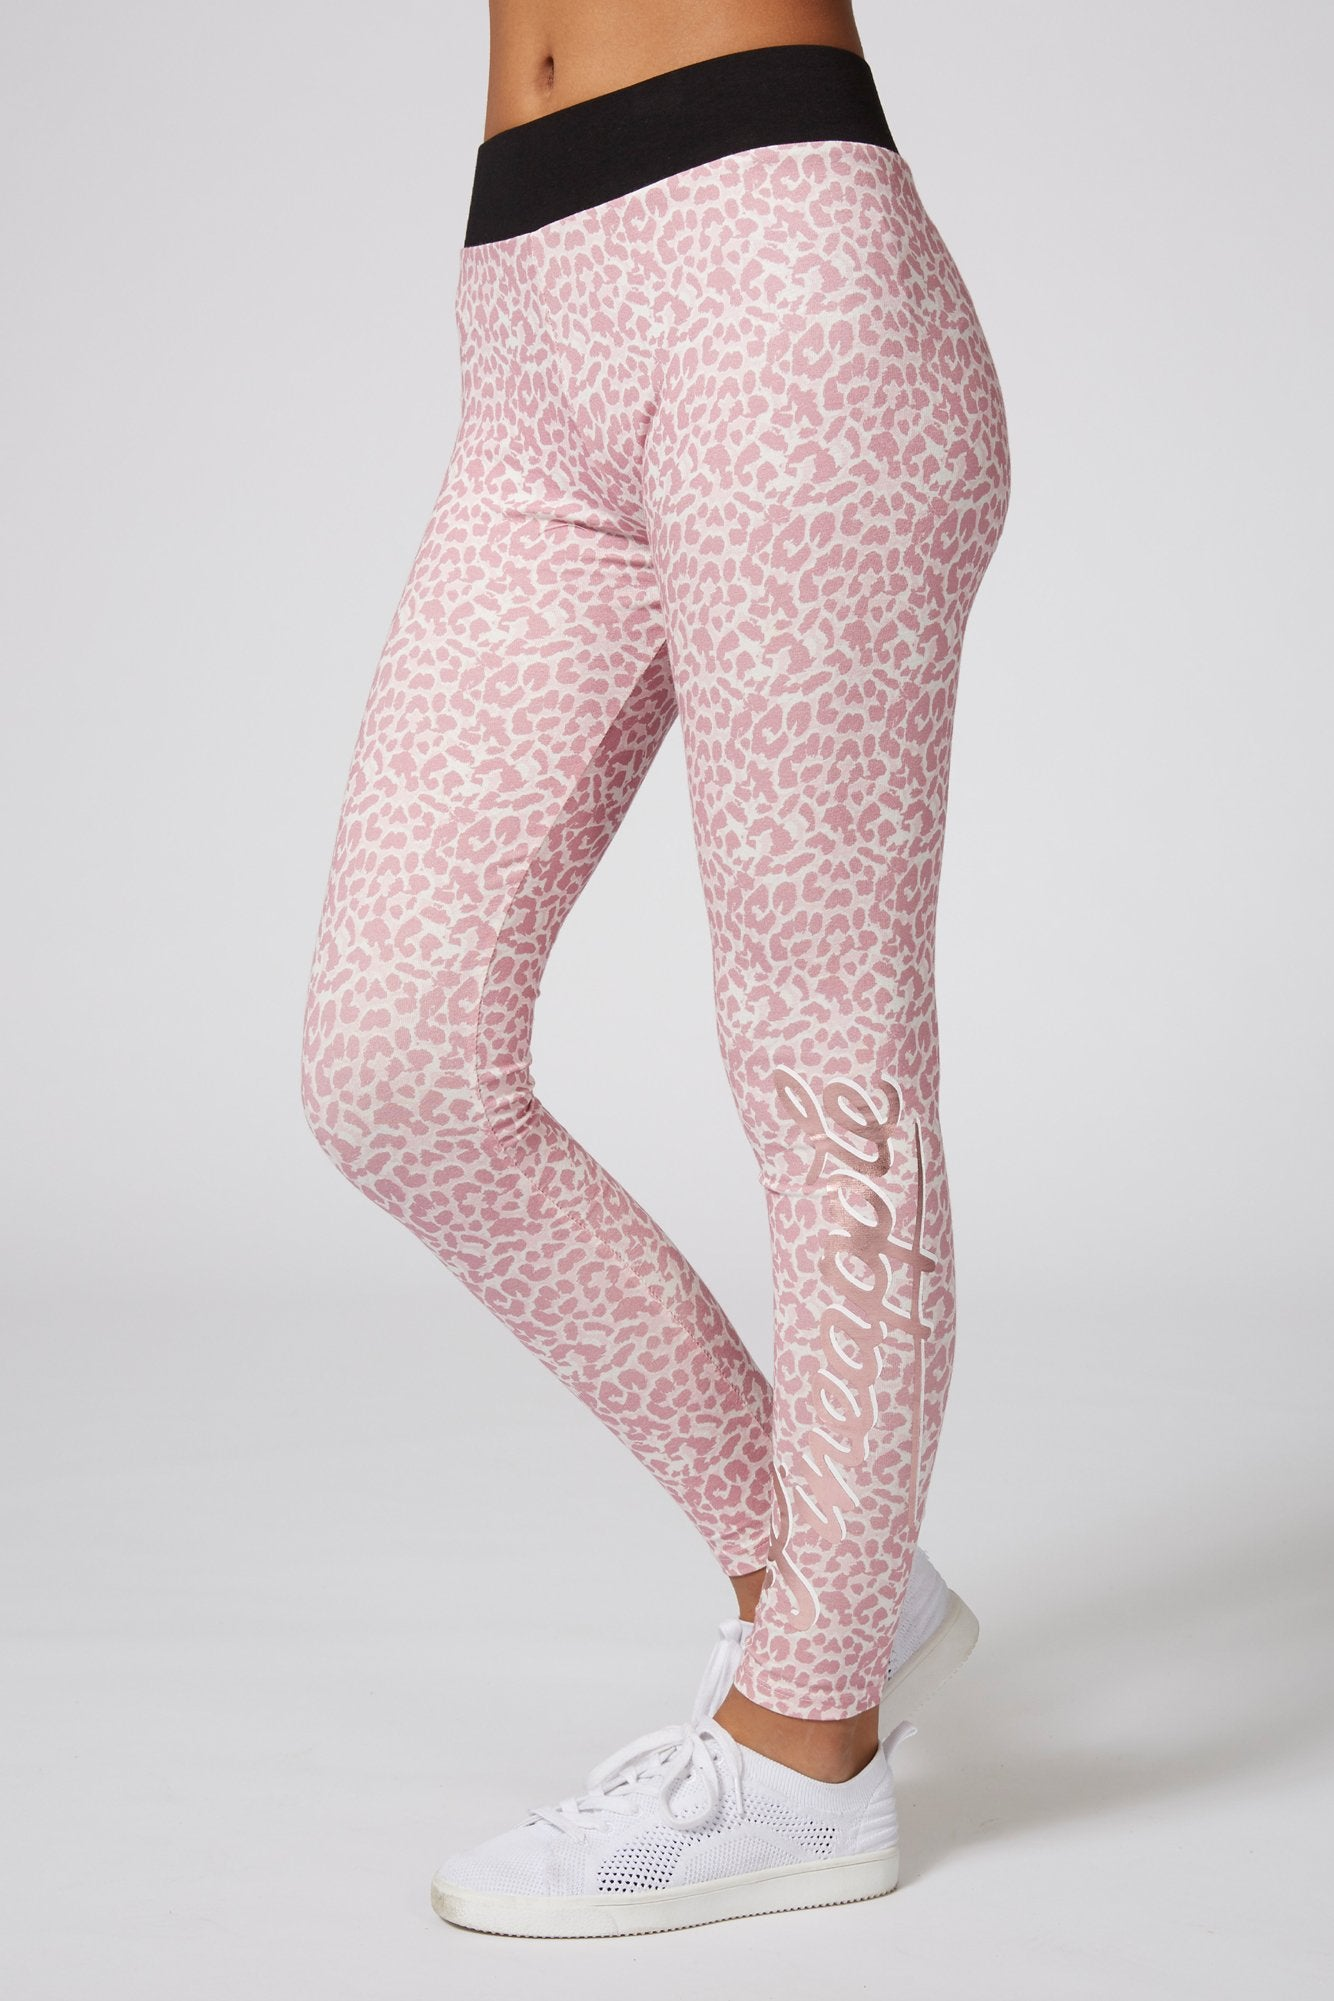 Pineapple Dancewear Girls' Pink Animal Print Leggings